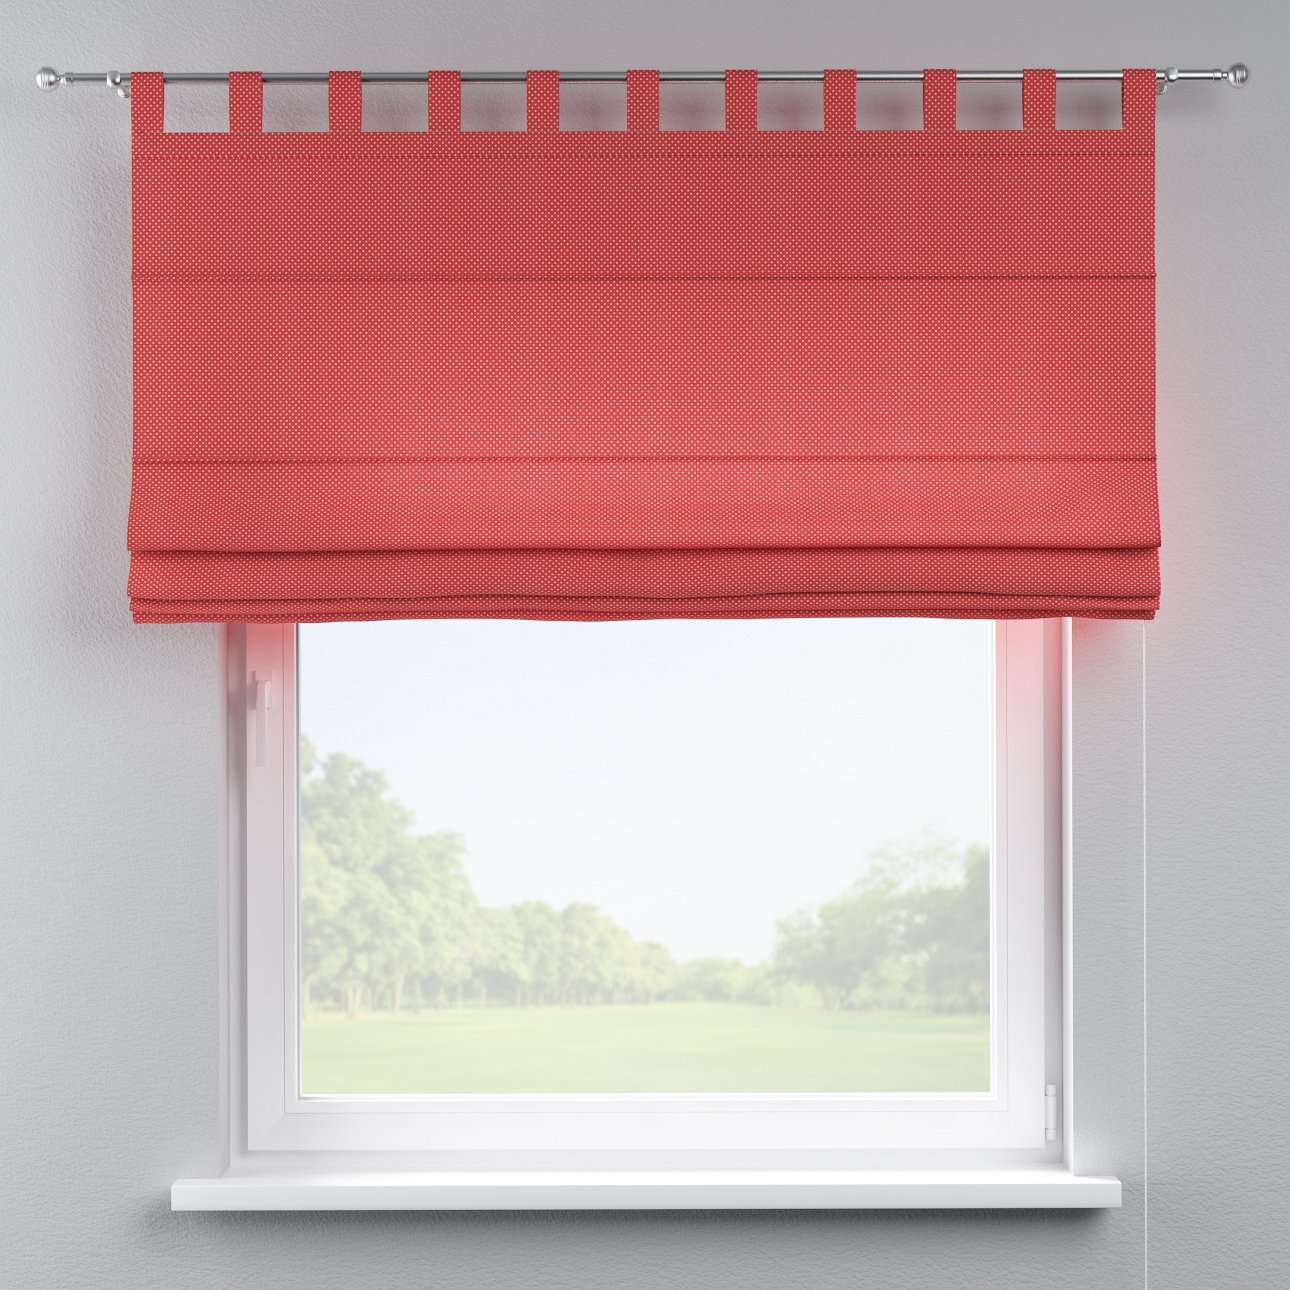 Verona tab top roman blind 80 x 170 cm (31.5 x 67 inch) in collection Ashley, fabric: 137-50